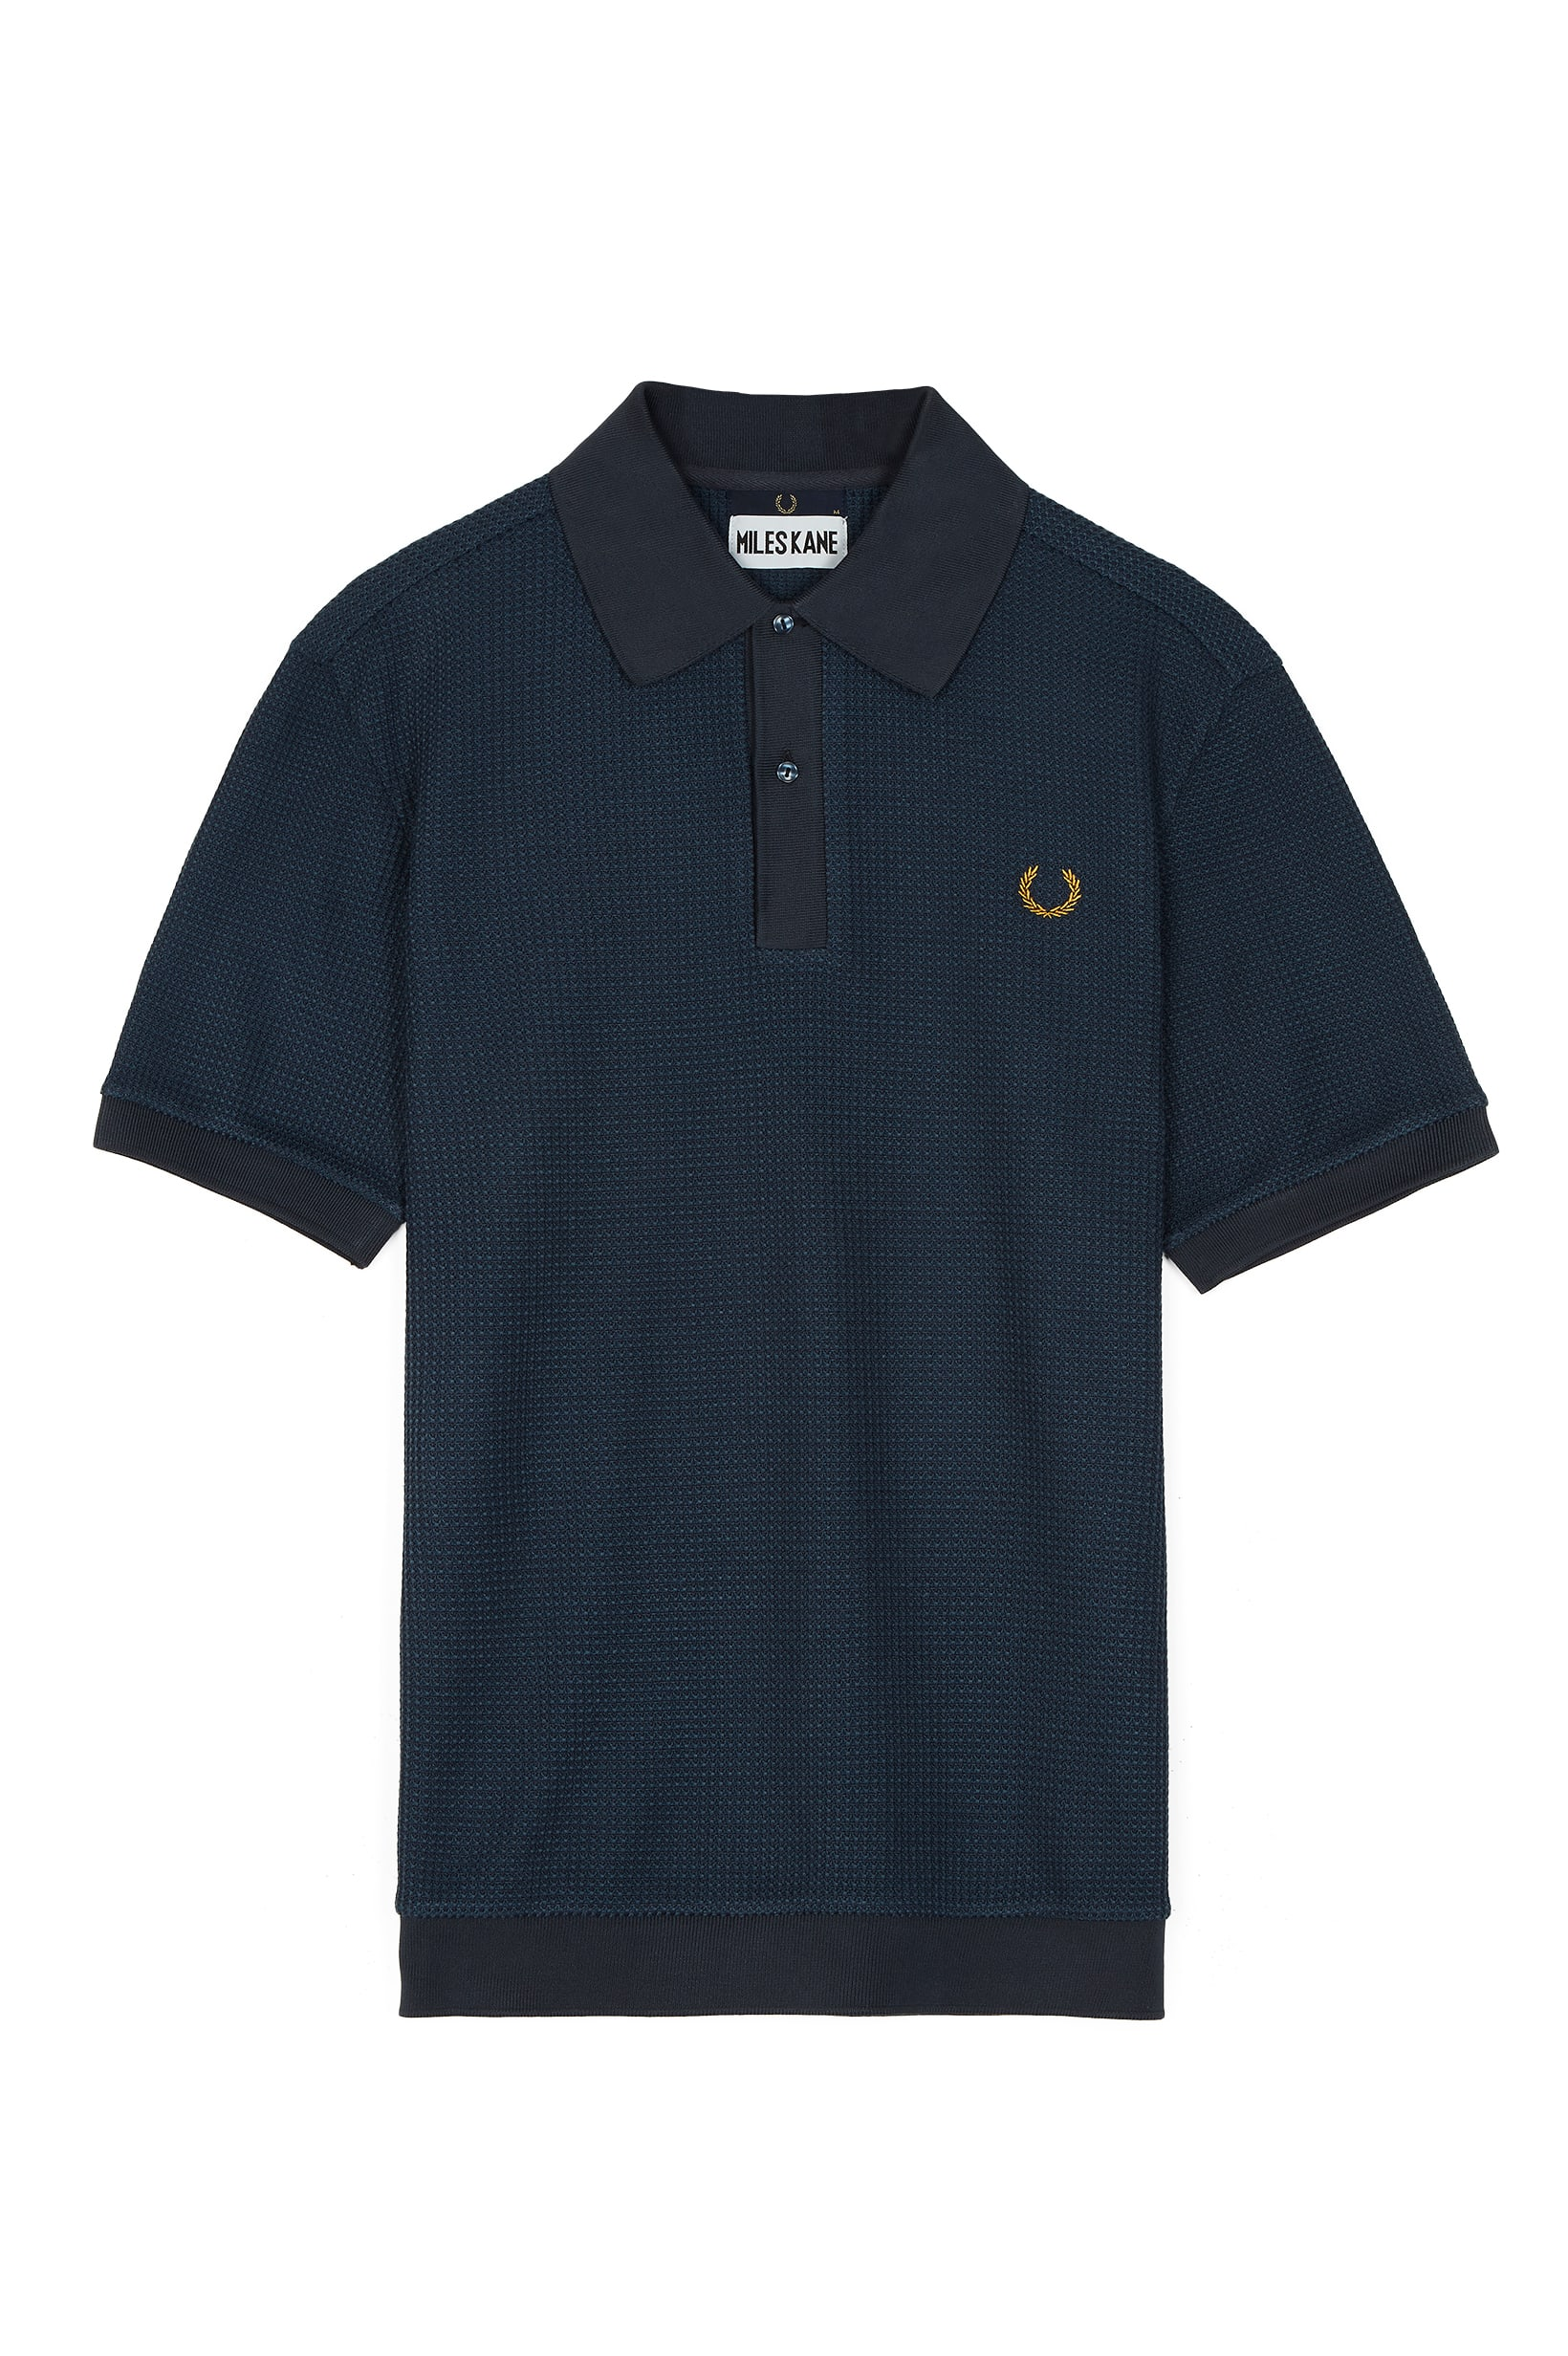 fredperrymiles12